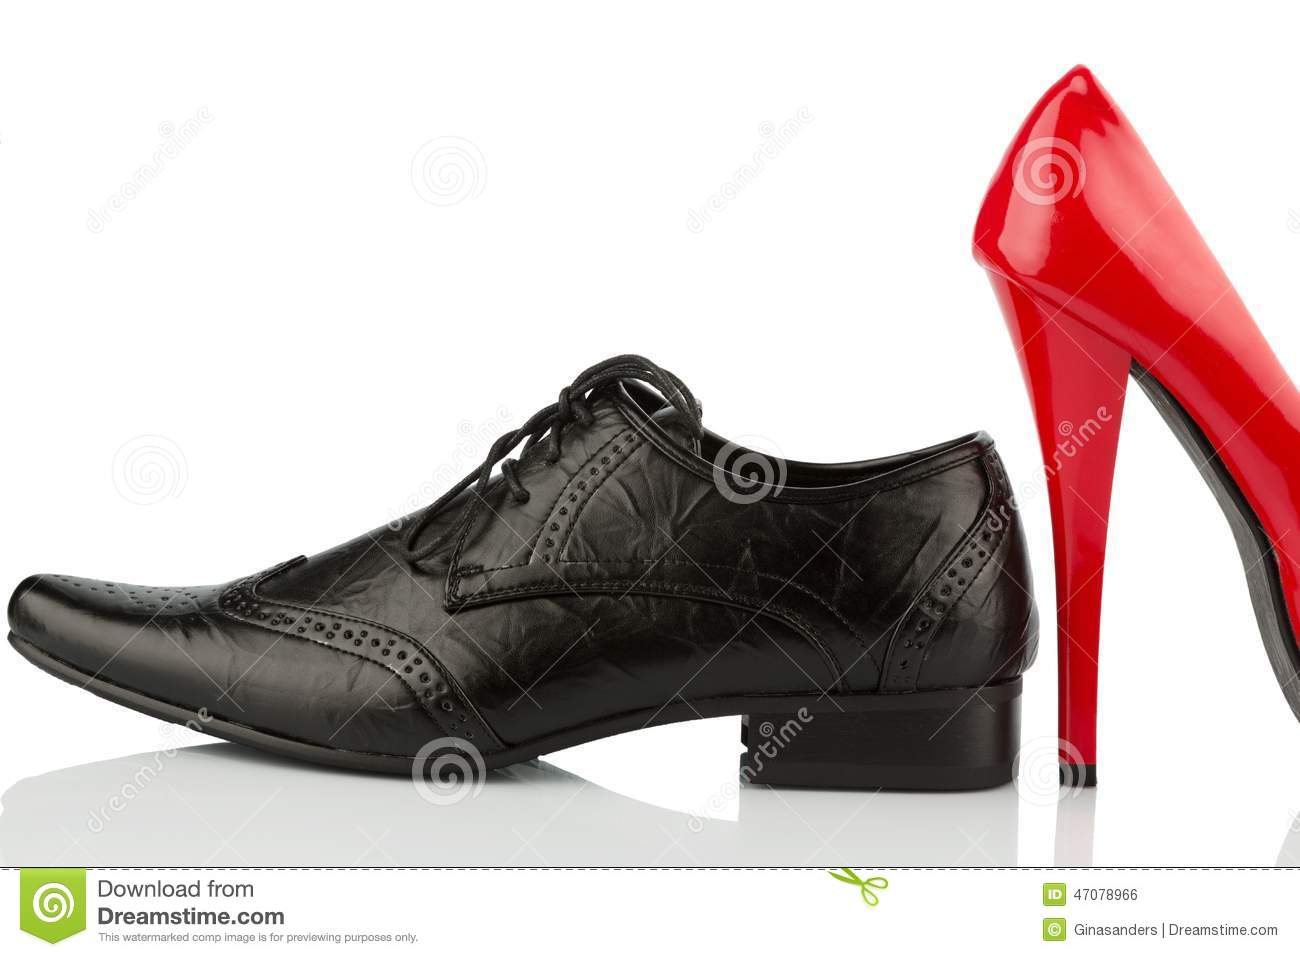 Red High Heels And Men's Shoe Stock Photo - Image: 47078966